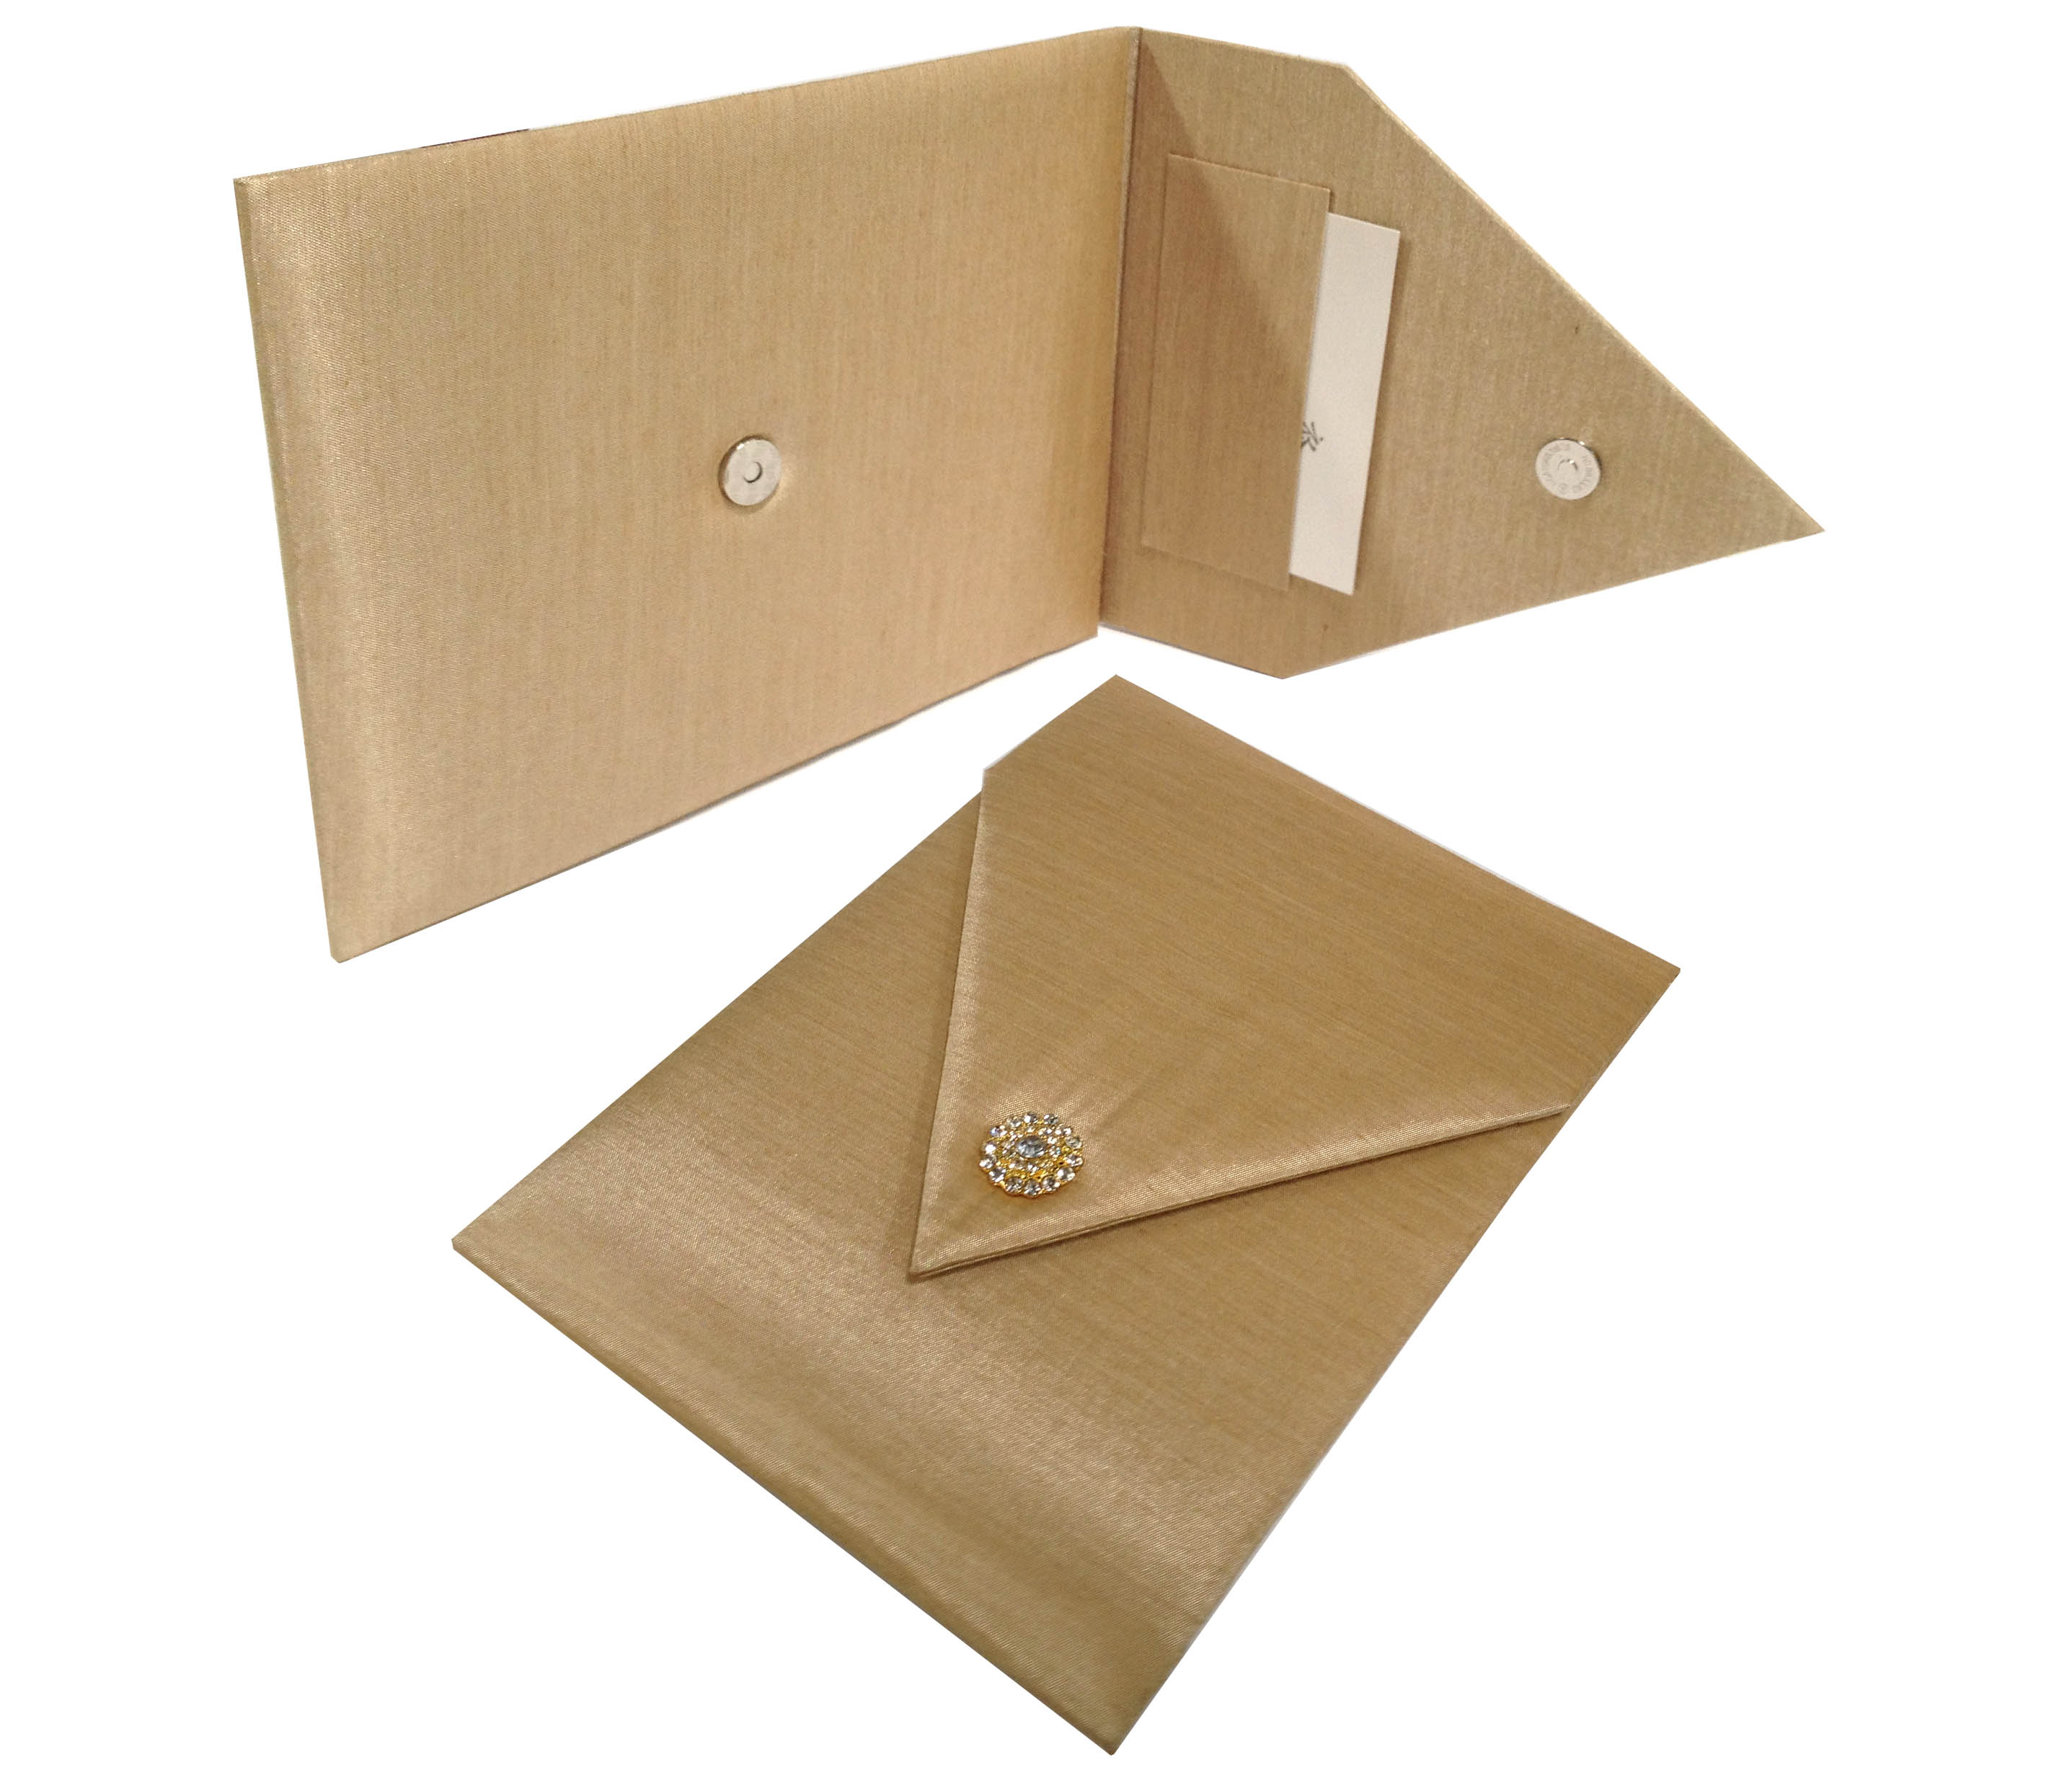 invitation envelopes archives luxury wedding invitations handmade